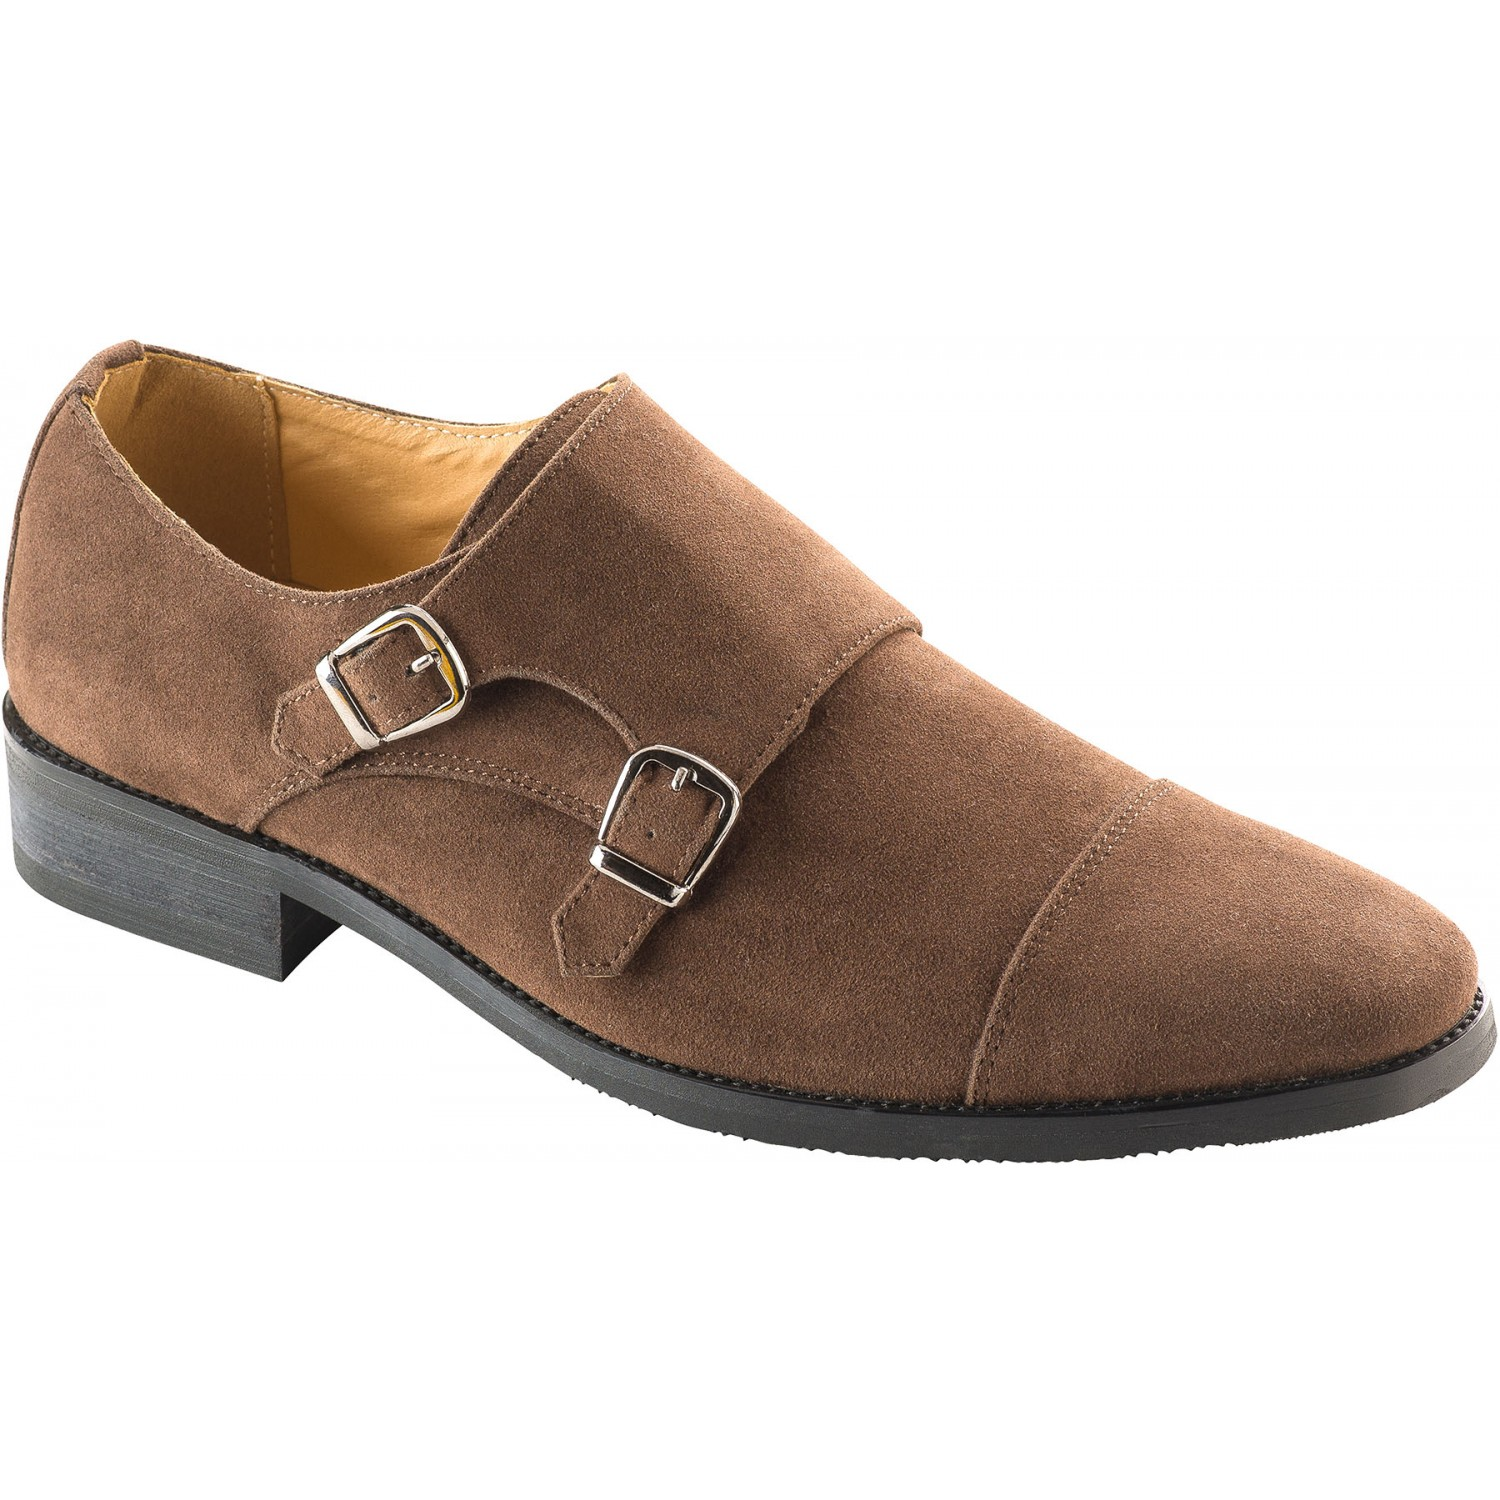 rown Double Monk Strap Dress Shoe